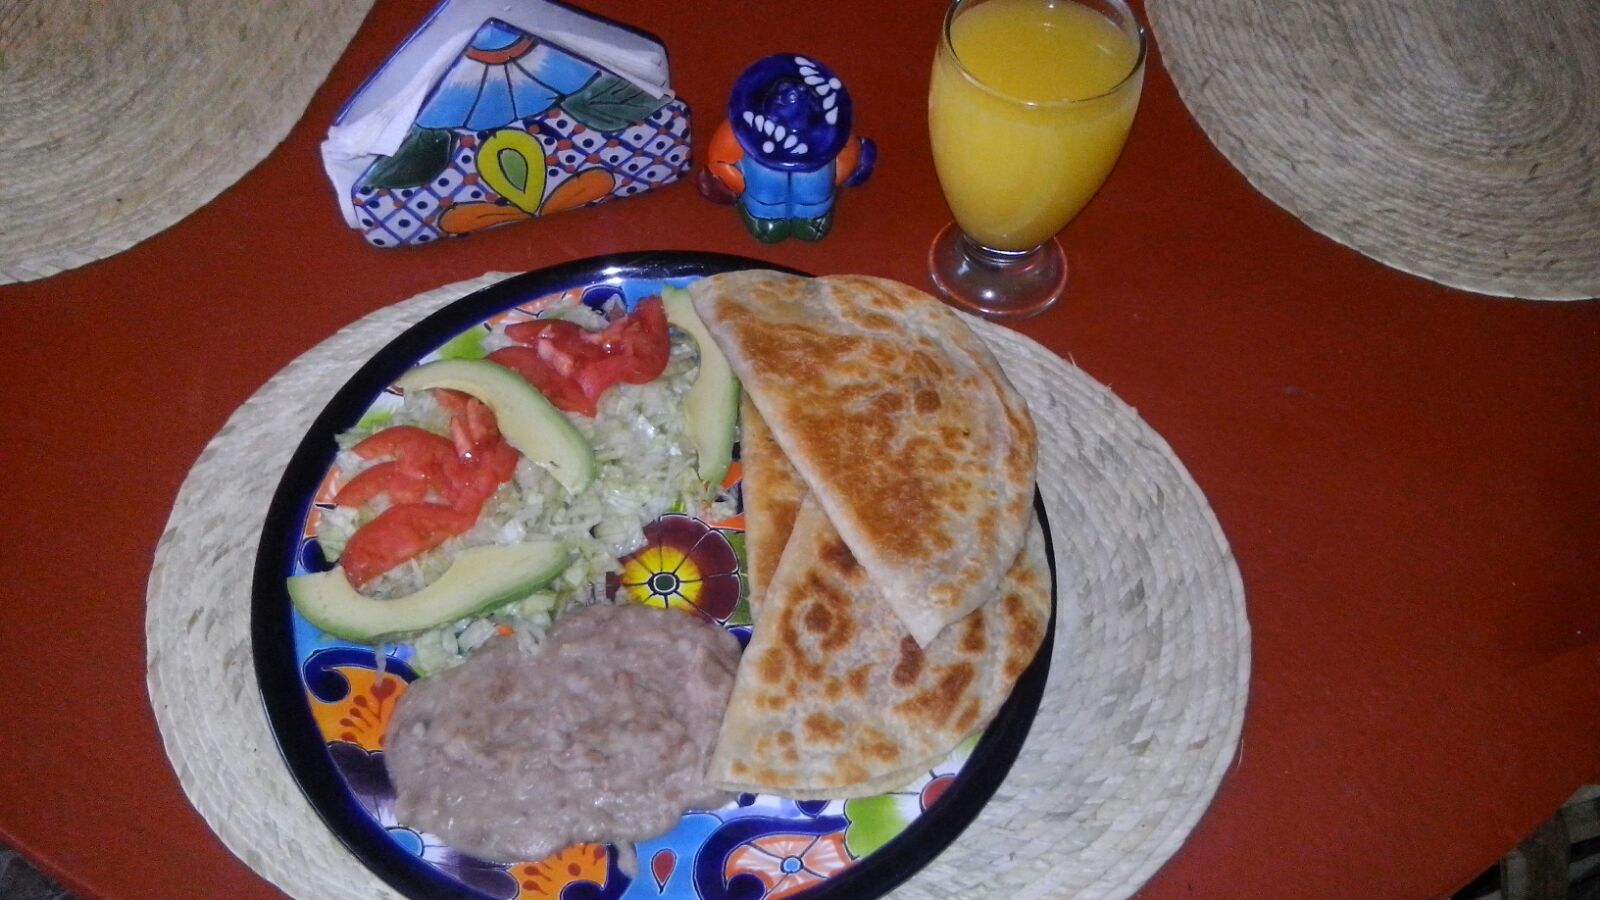 Quesadilas,salad & cream of beans ...